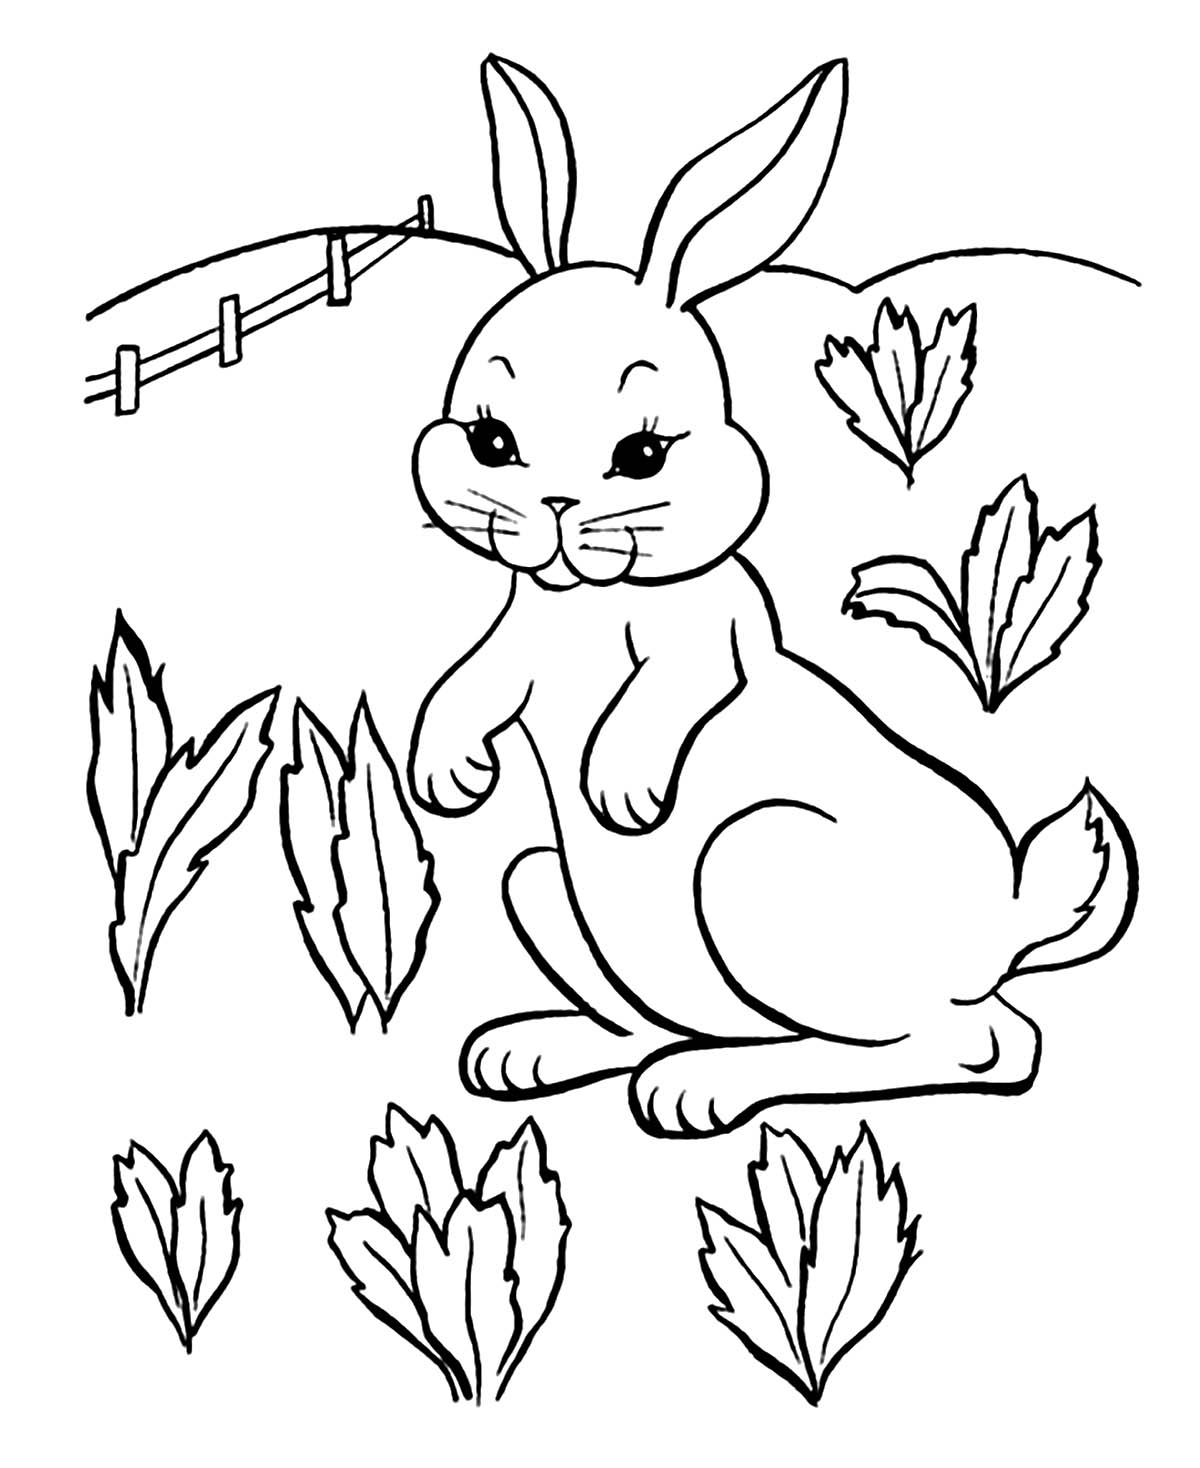 bunny coloring pages rabbit to download rabbit kids coloring pages pages bunny coloring